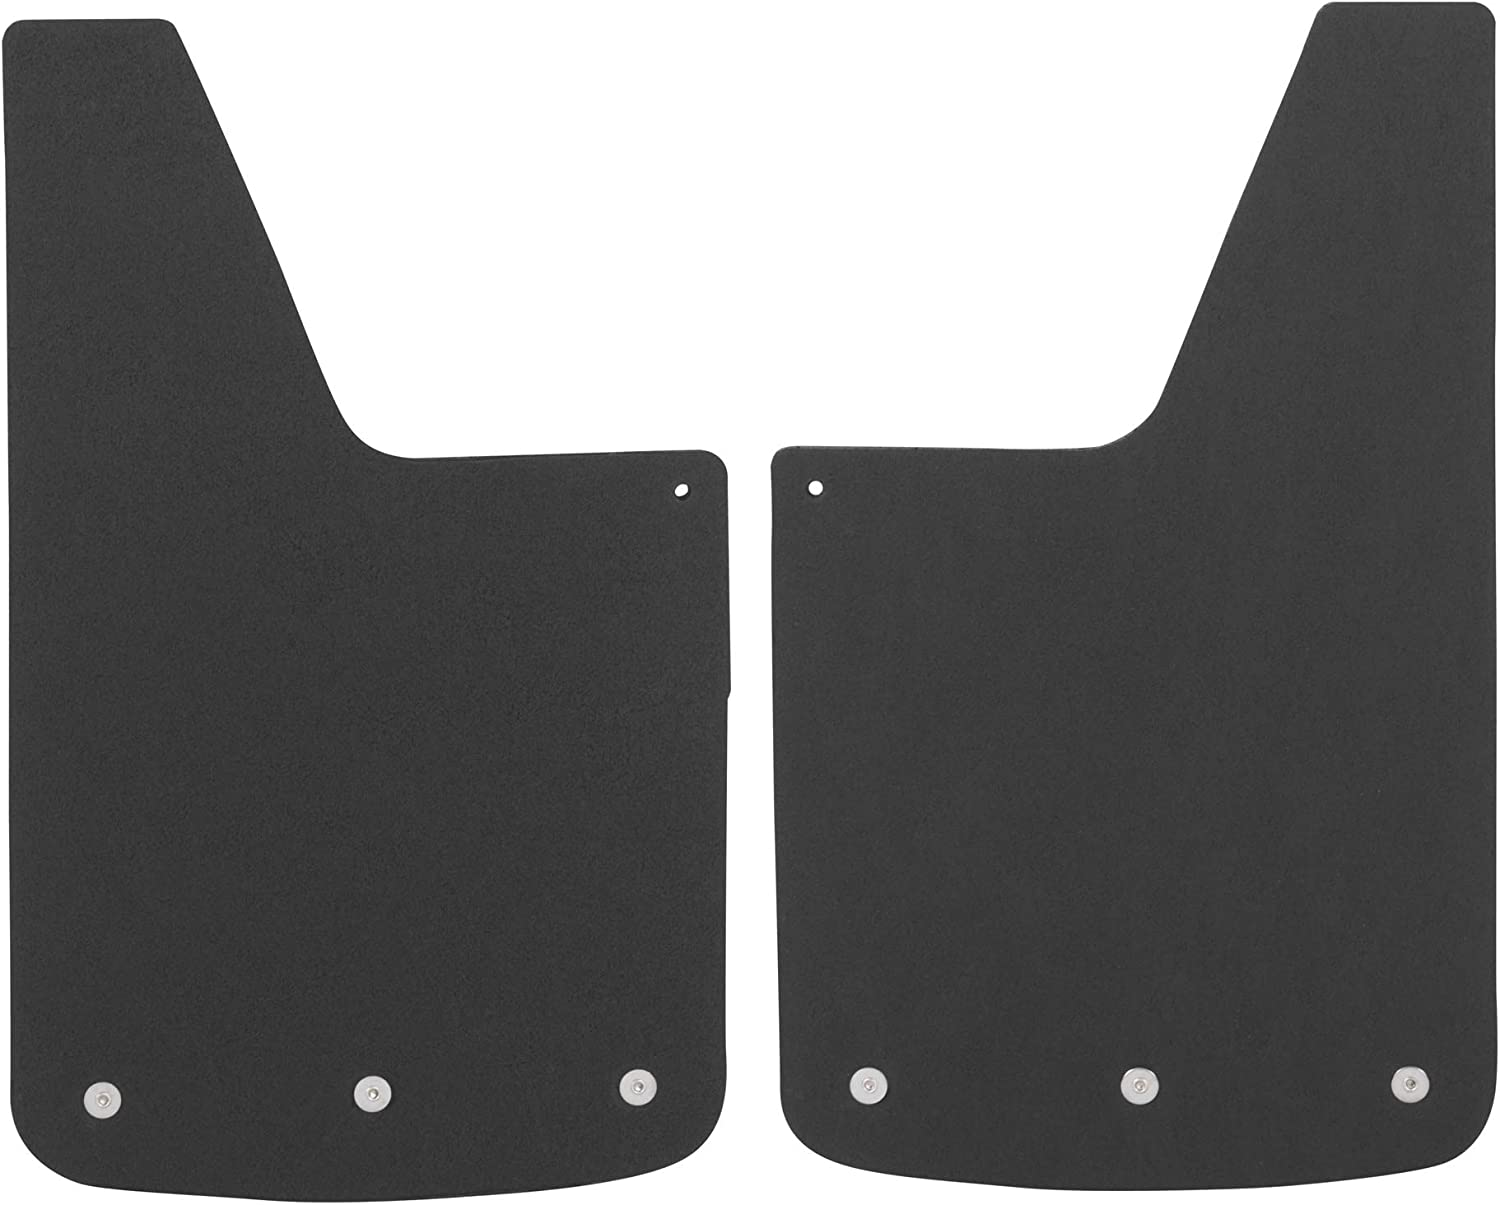 Select Ram 1500 LUVERNE 250936 Front 12-Inch x 23-Inch Textured Rubber Mud Guards